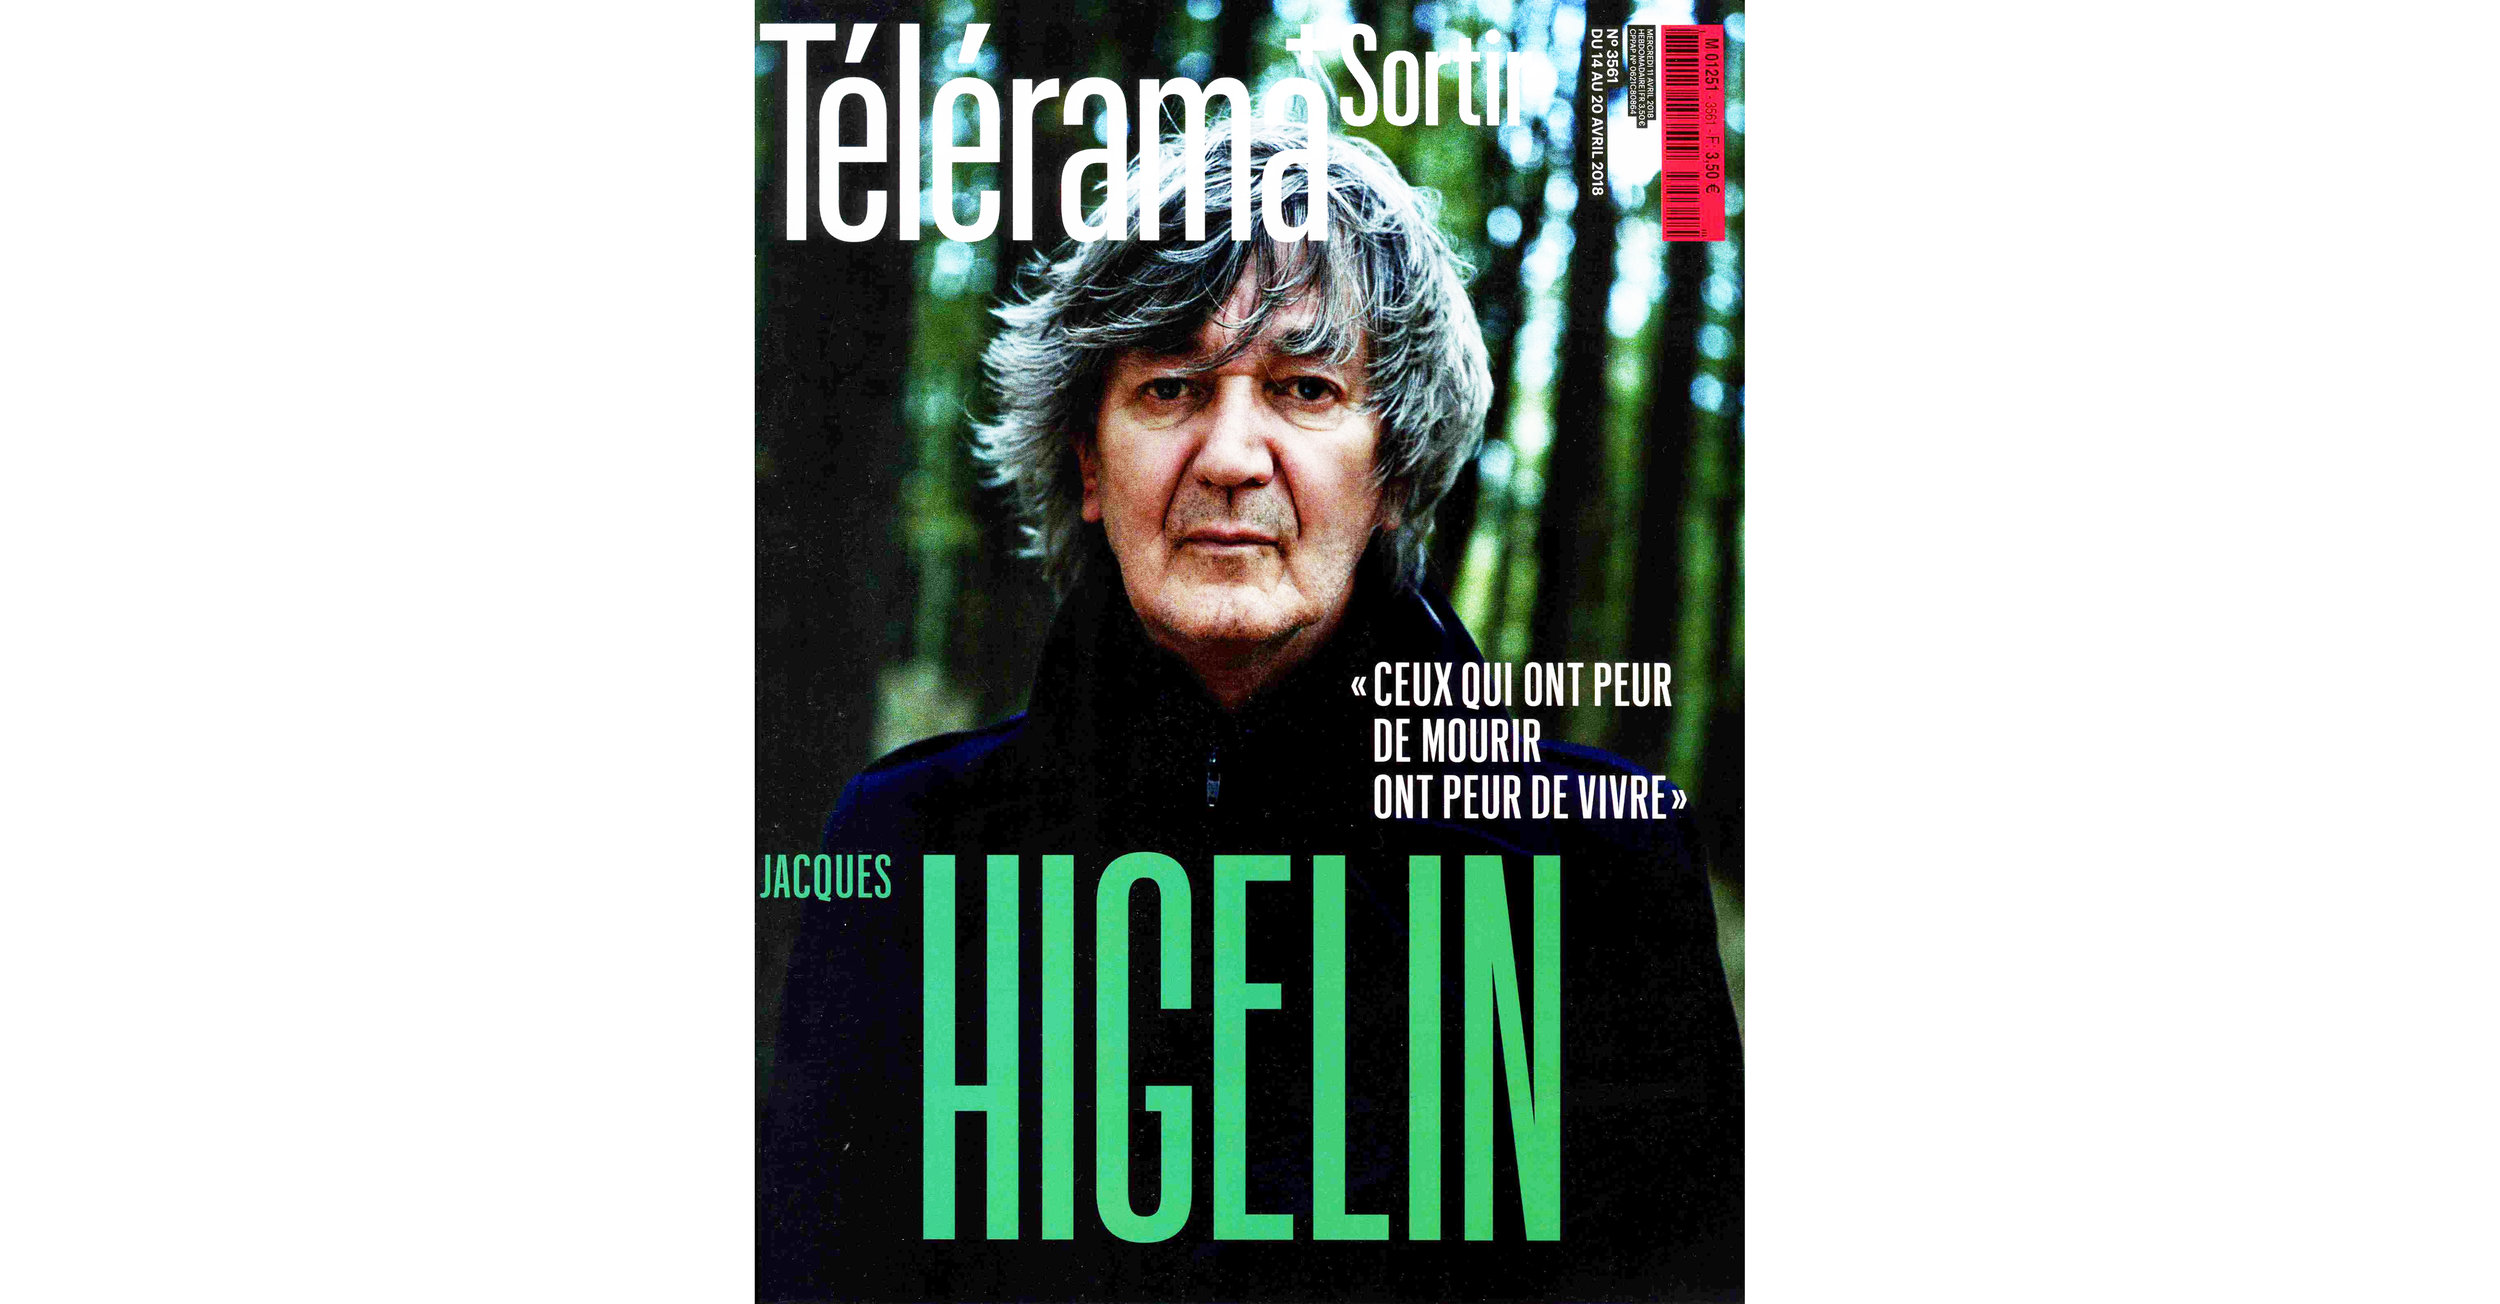 THE KID in TELERAMA Magazine - April 14 2018 Print Issue - France - Page 12 - Cover page - 150dpi - Web wb.jpg